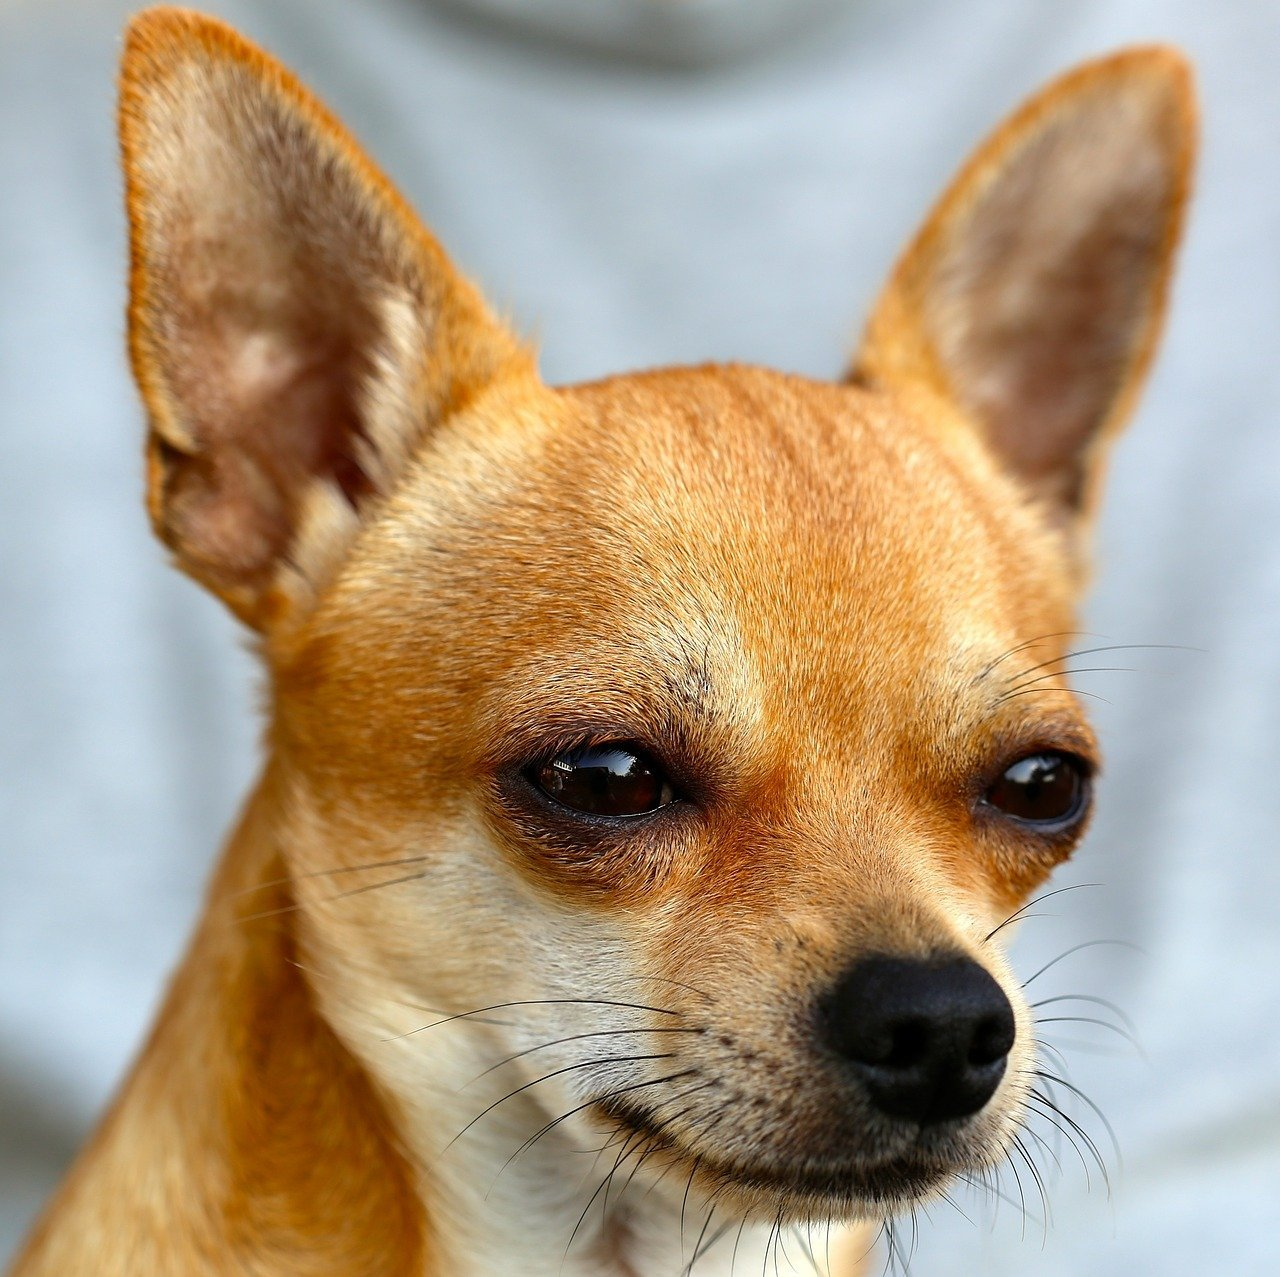 A close-up of a Chihuahua with its ears standing and a suspicious look on its face   Photo: Pixabay/a-mblomma